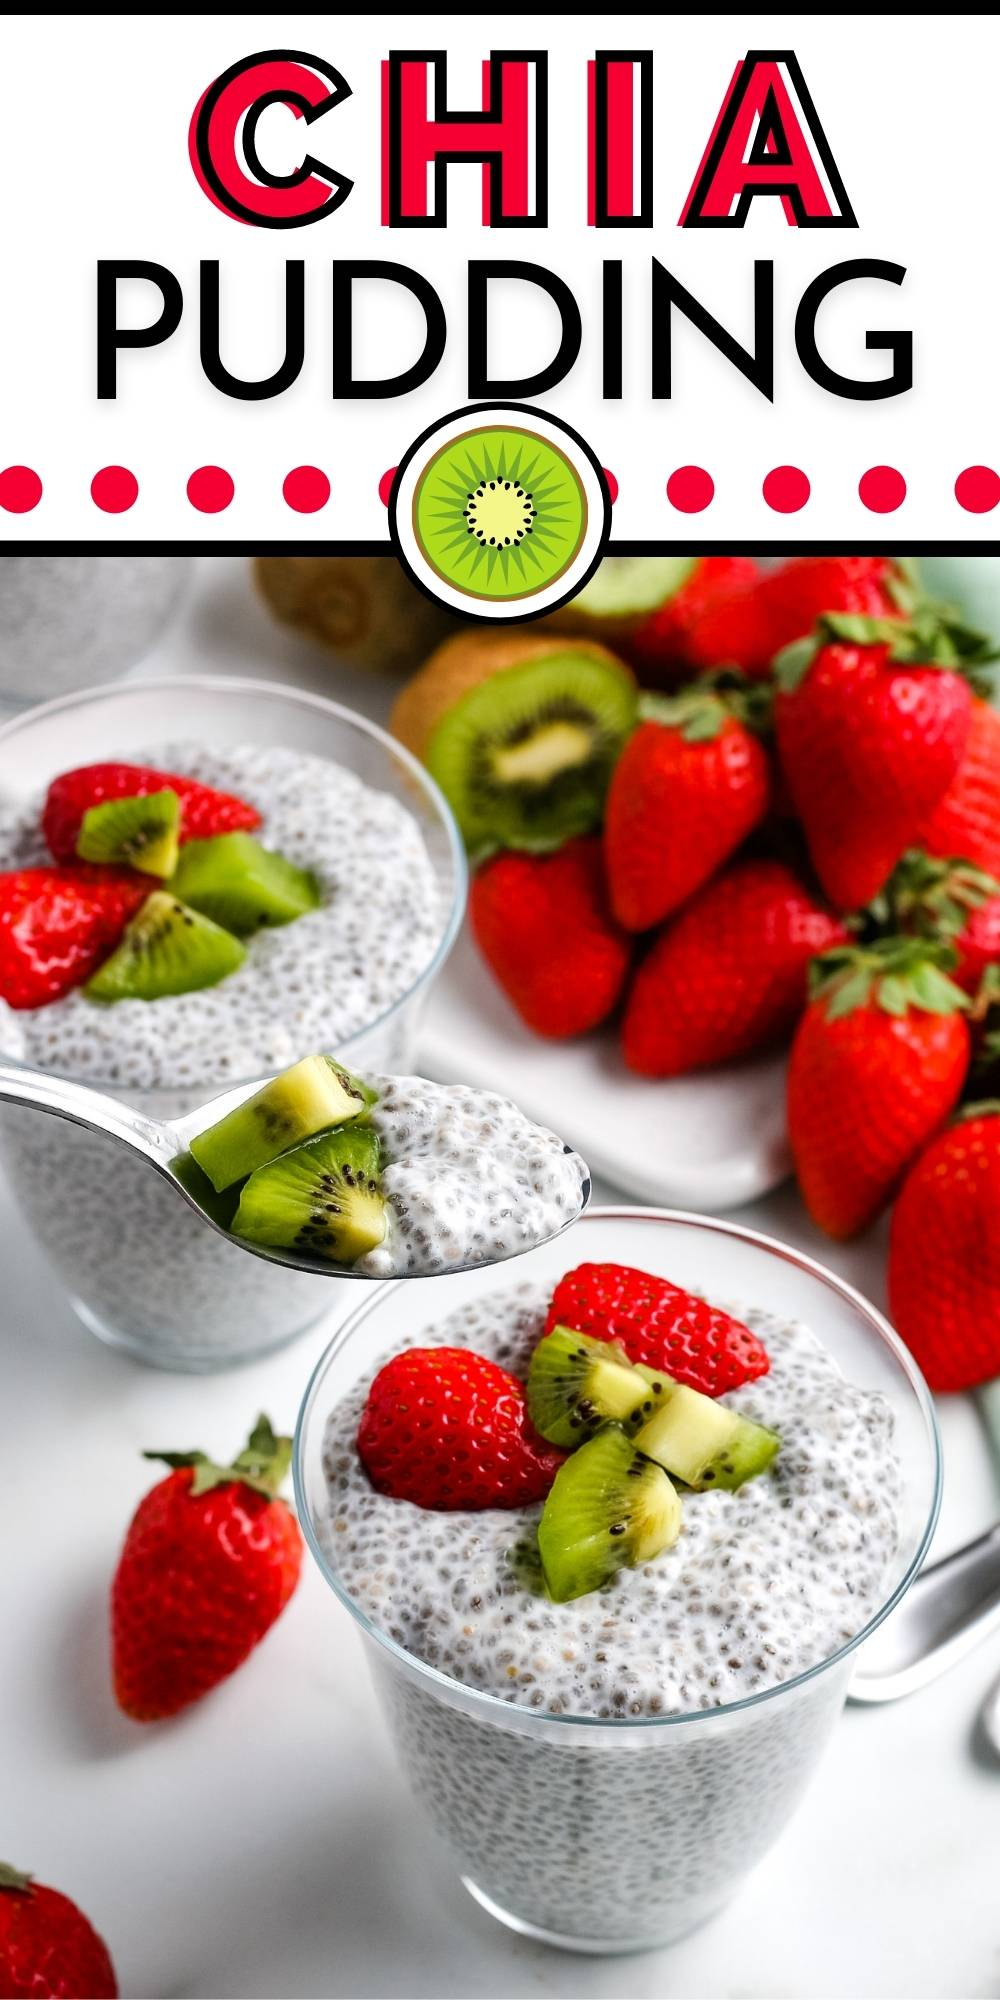 Chia pudding is great as a healthy breakfast, snack, or light meal that's loaded with nutrients. It's good for 5 days, so it's a great option for make ahead meals. via @easybudgetrecipes